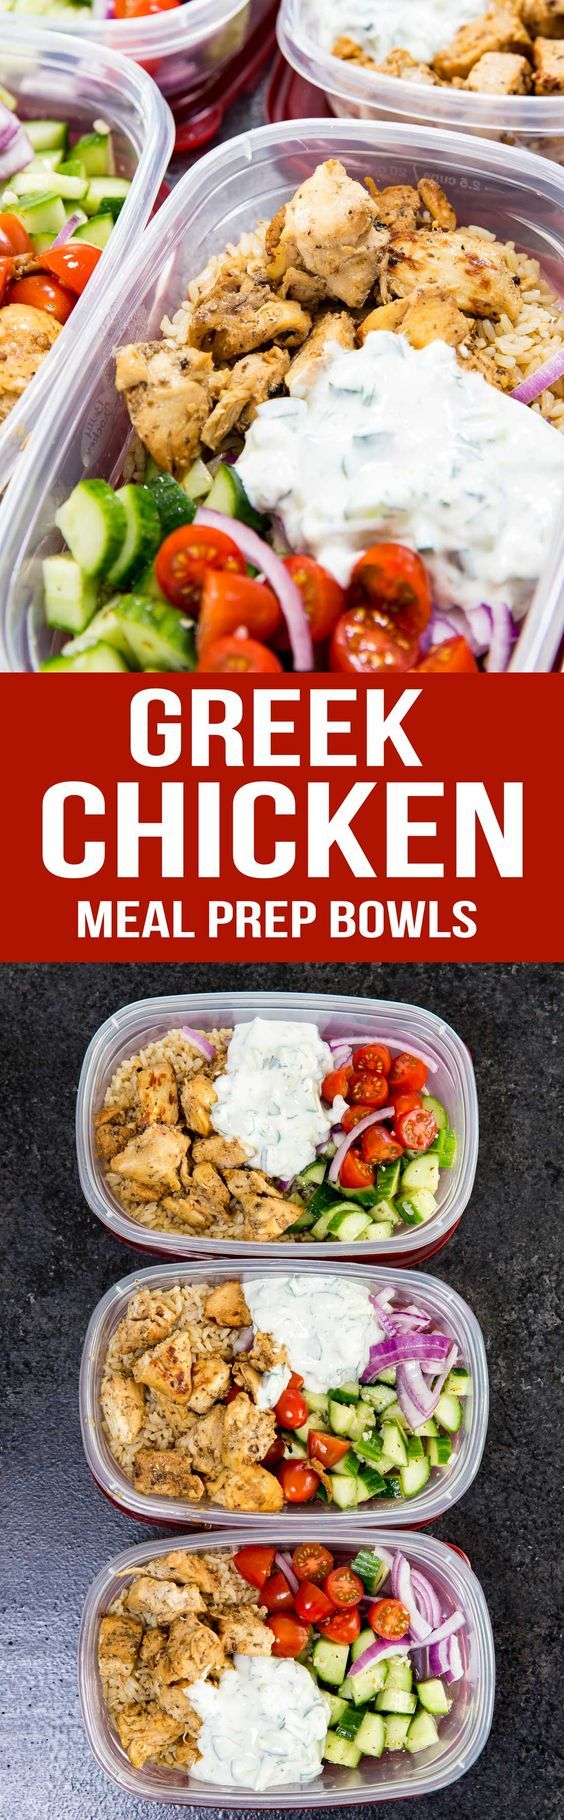 Greek Chicken Meal Prep Bowls are the best!  Marinaded chicken, cucumber salad, and tzatiki sauce. YUM!